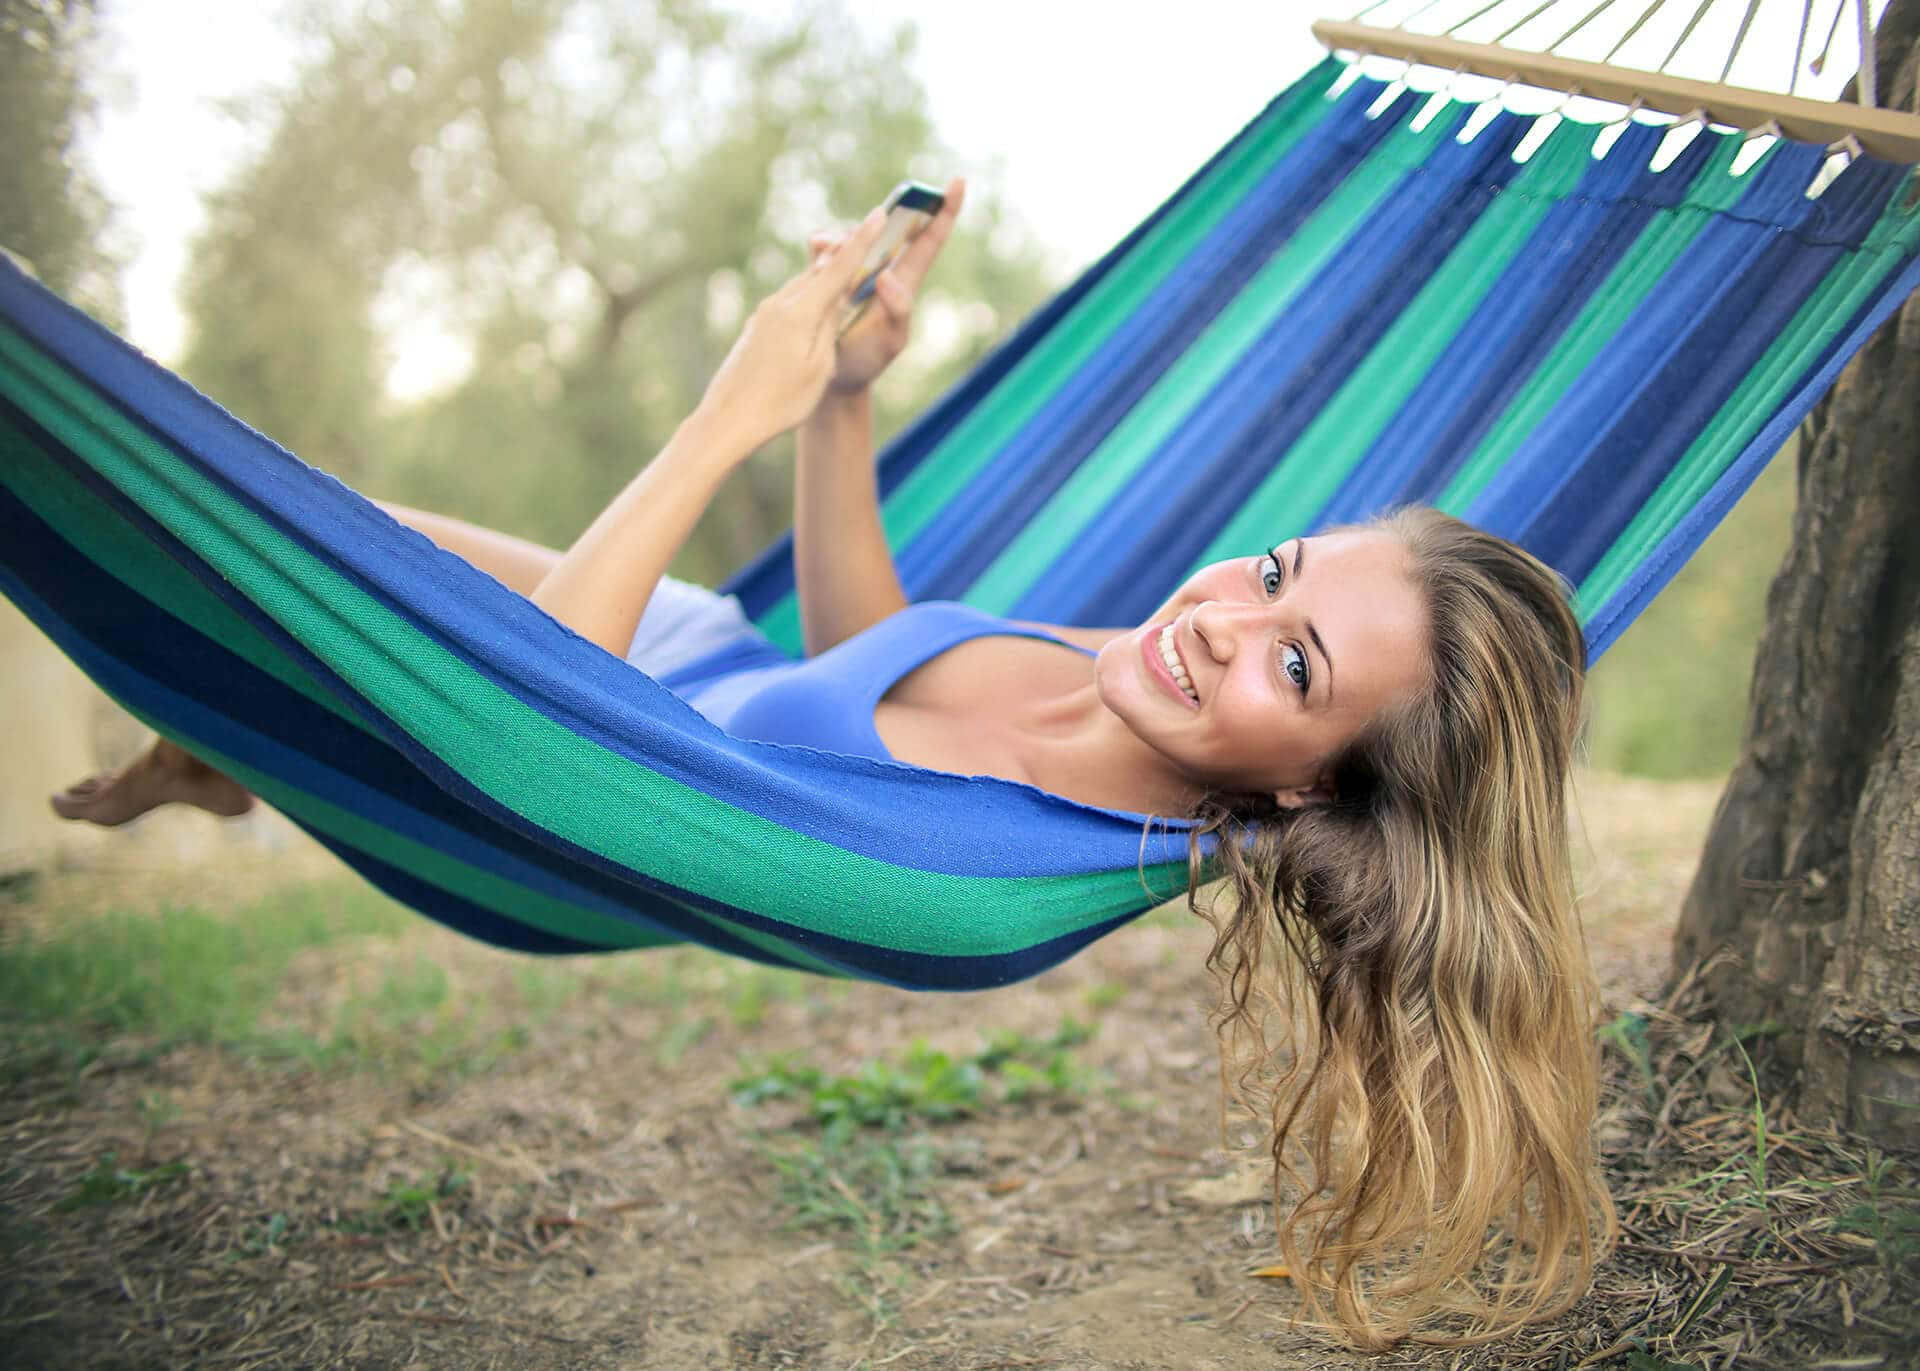 woman in a hammock with a phone texting